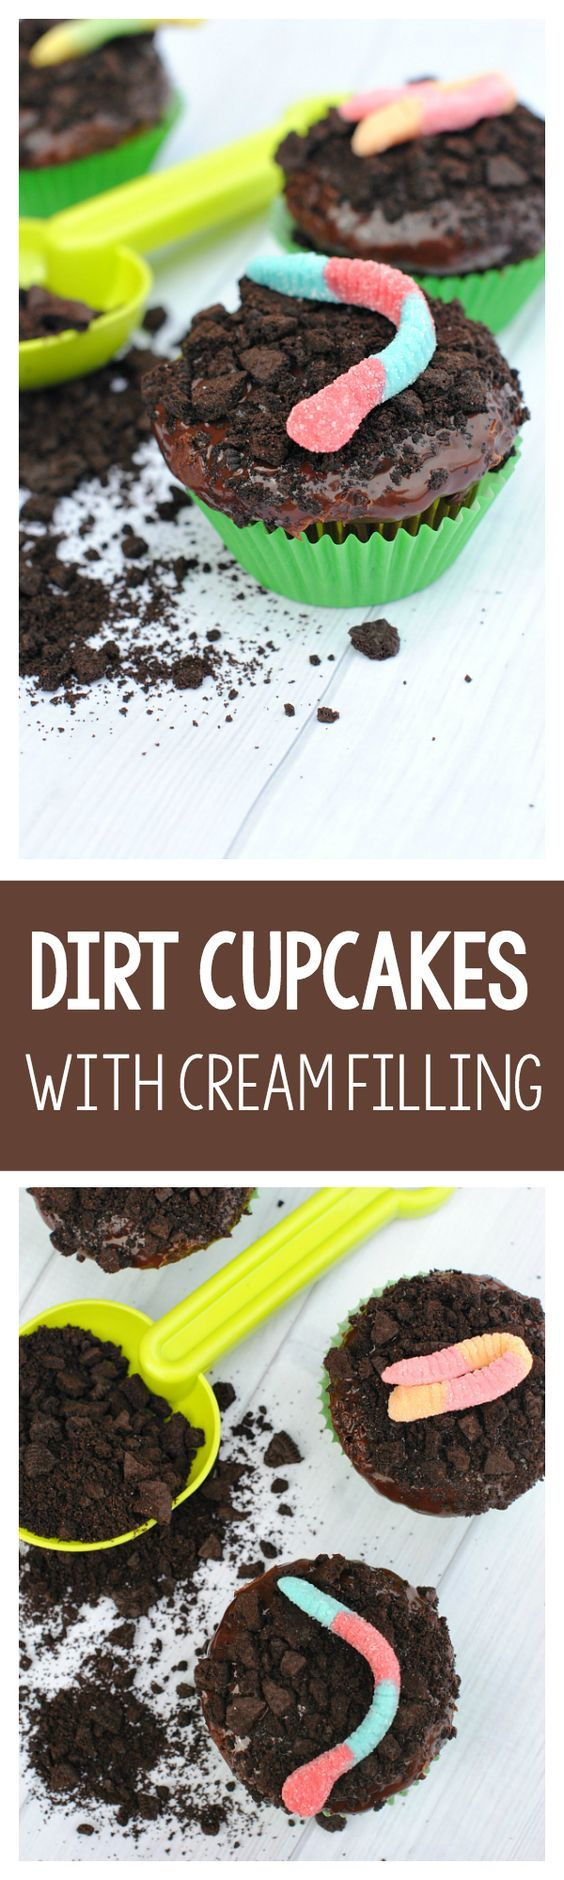 Dirt Cupcakes with Chocolate Ganache and Cream Filling. Yum!